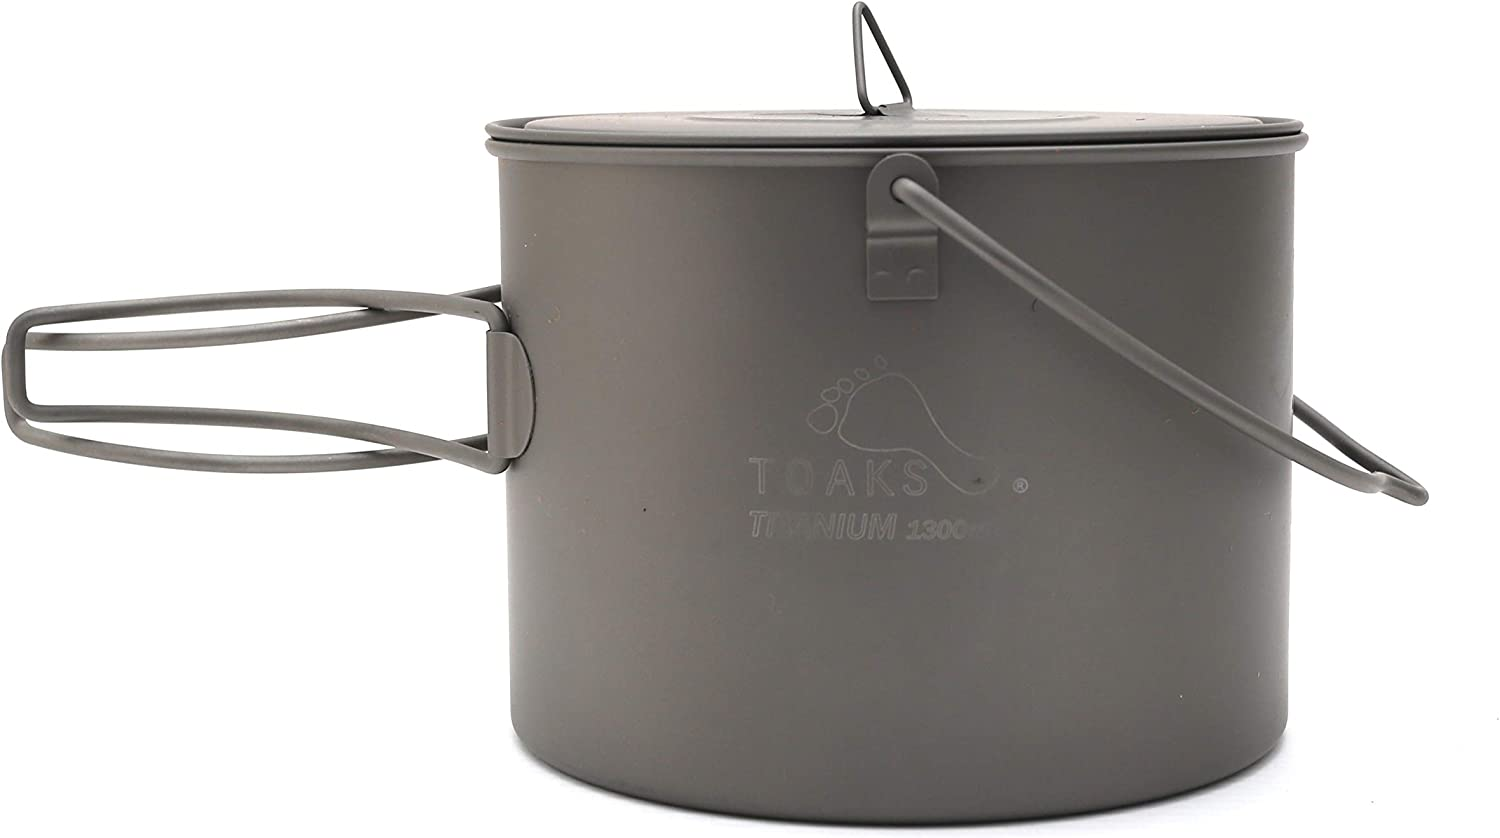 Toaks 1300 Pot with bail handle